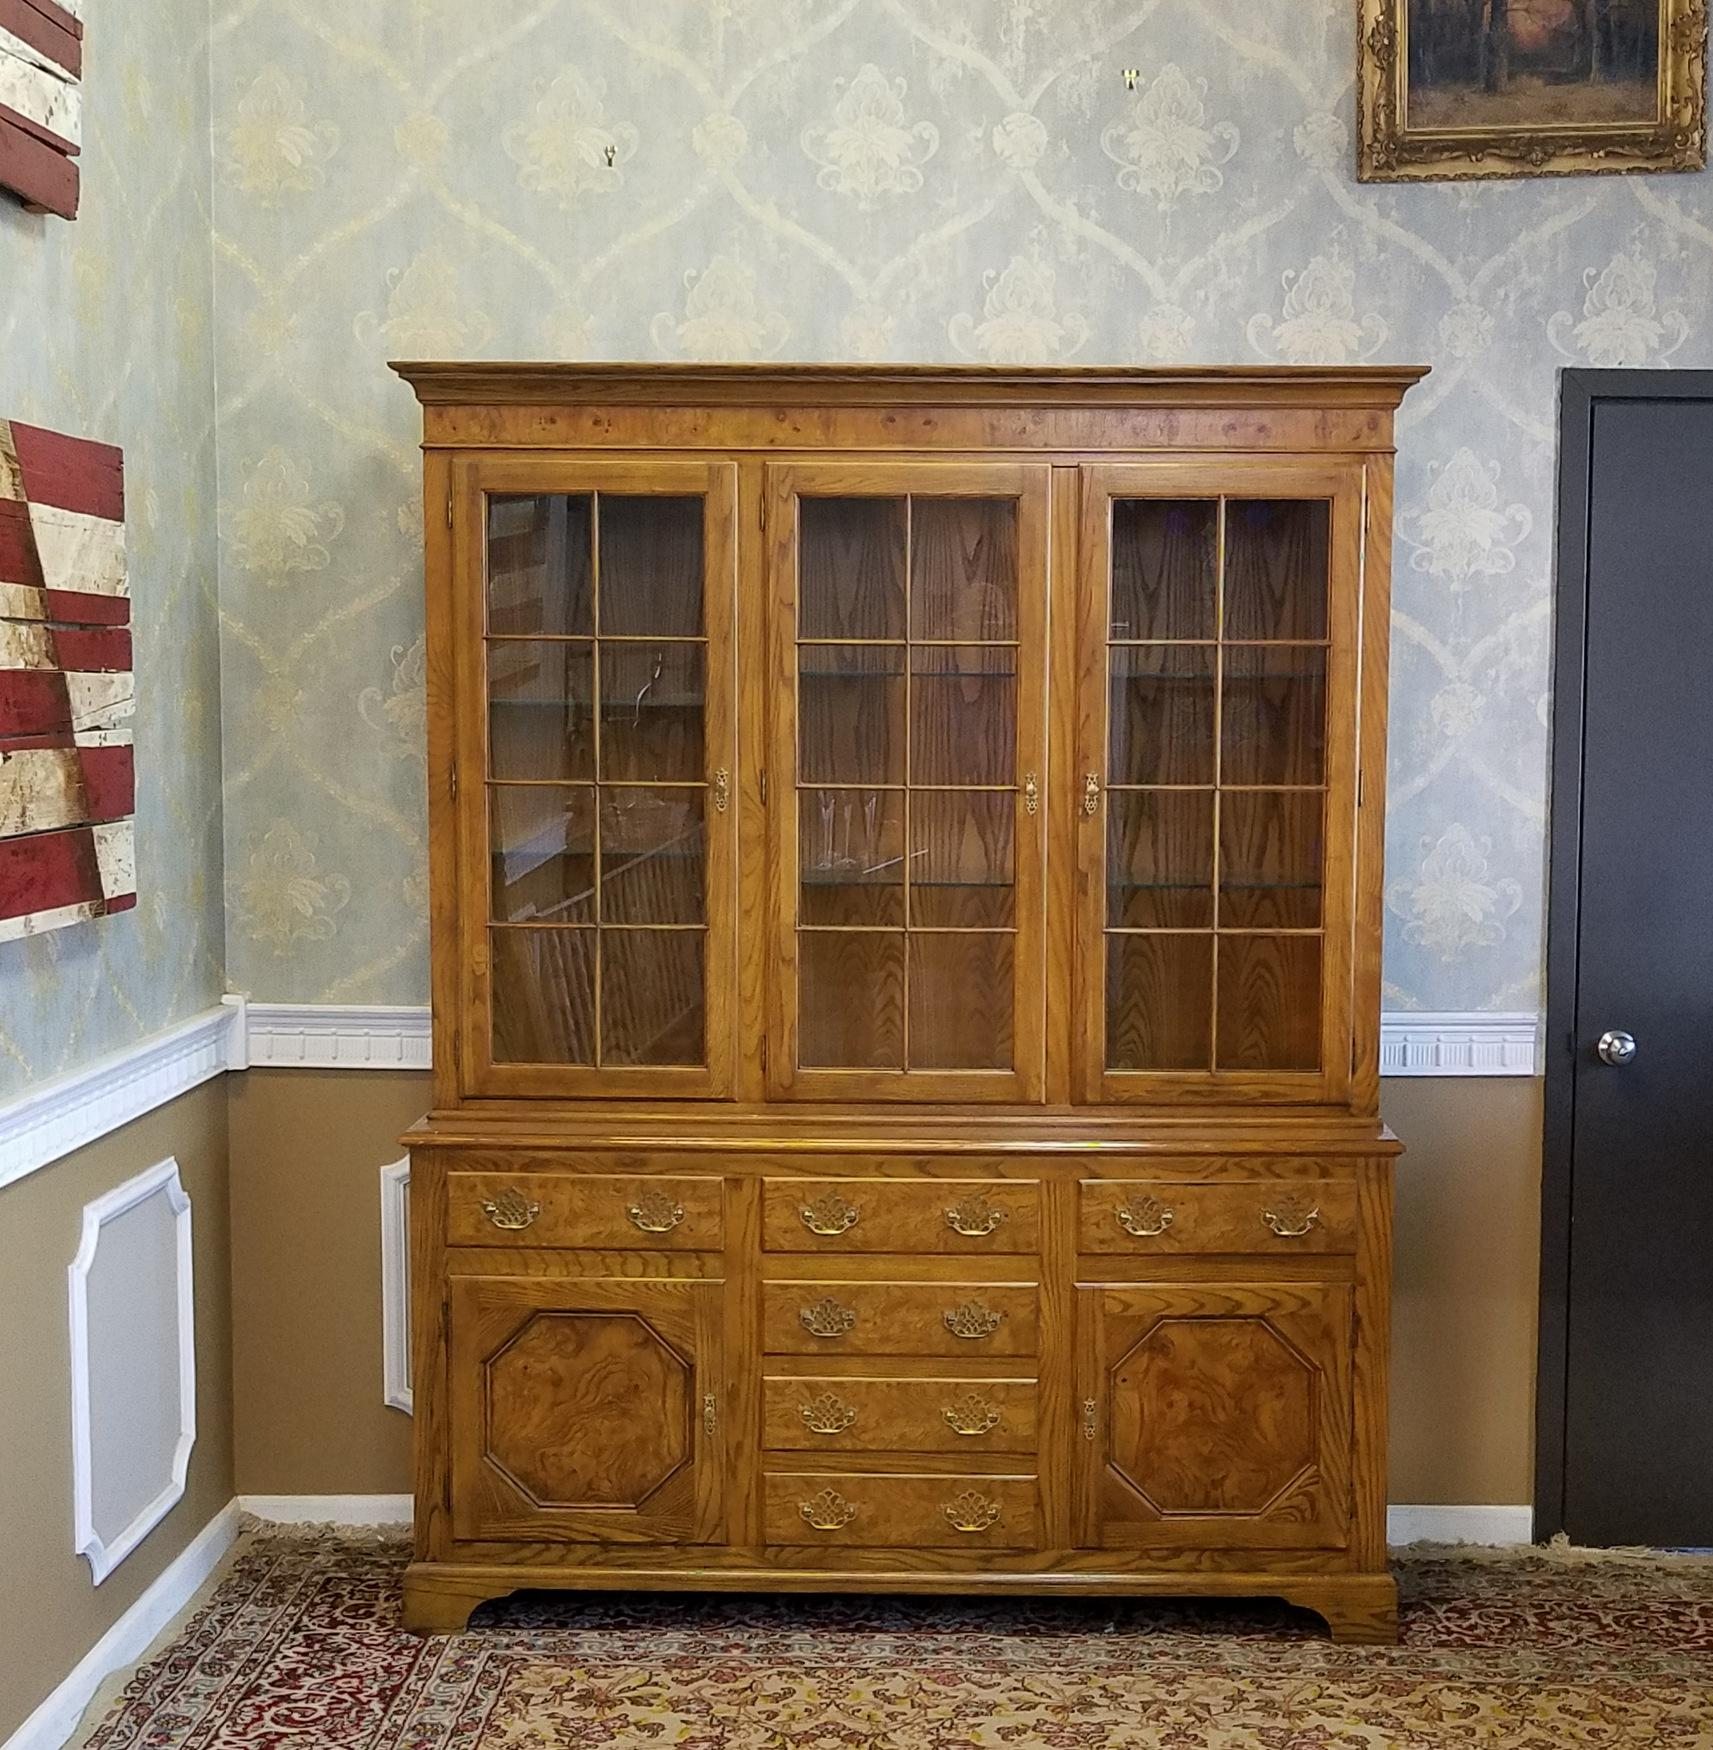 This Is A Very Nice Baker Furniture Oak With Elm Panels Traditional Queen  Anne Style Dining